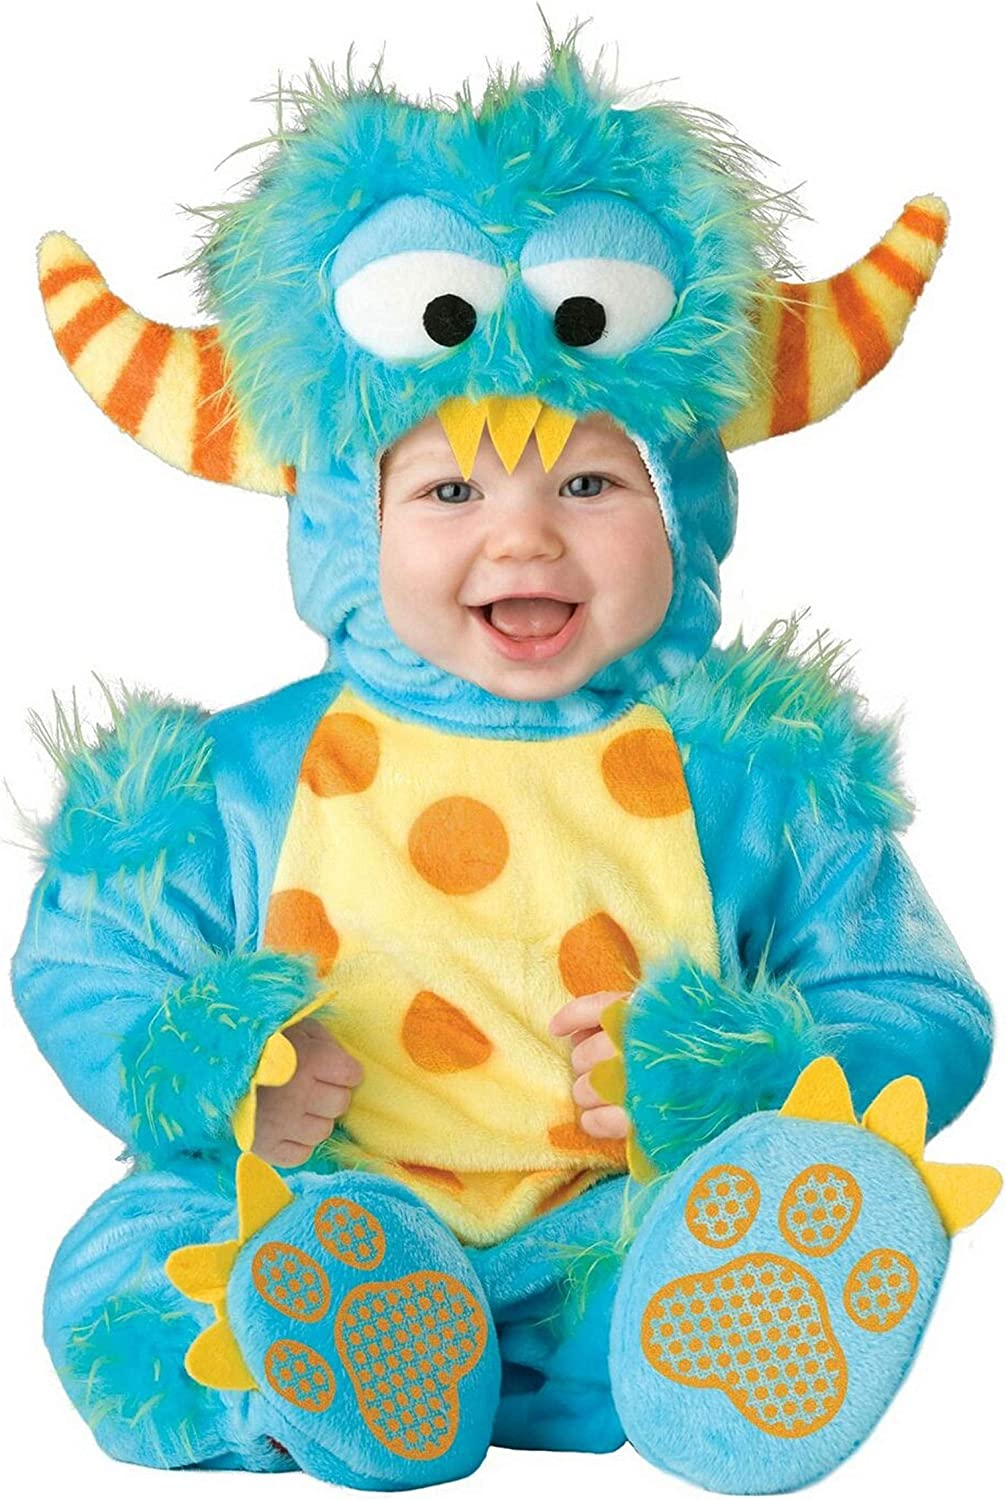 Lil Characters Unisex Baby Infant Monster Costume Amazon Ca Clothing Accessories